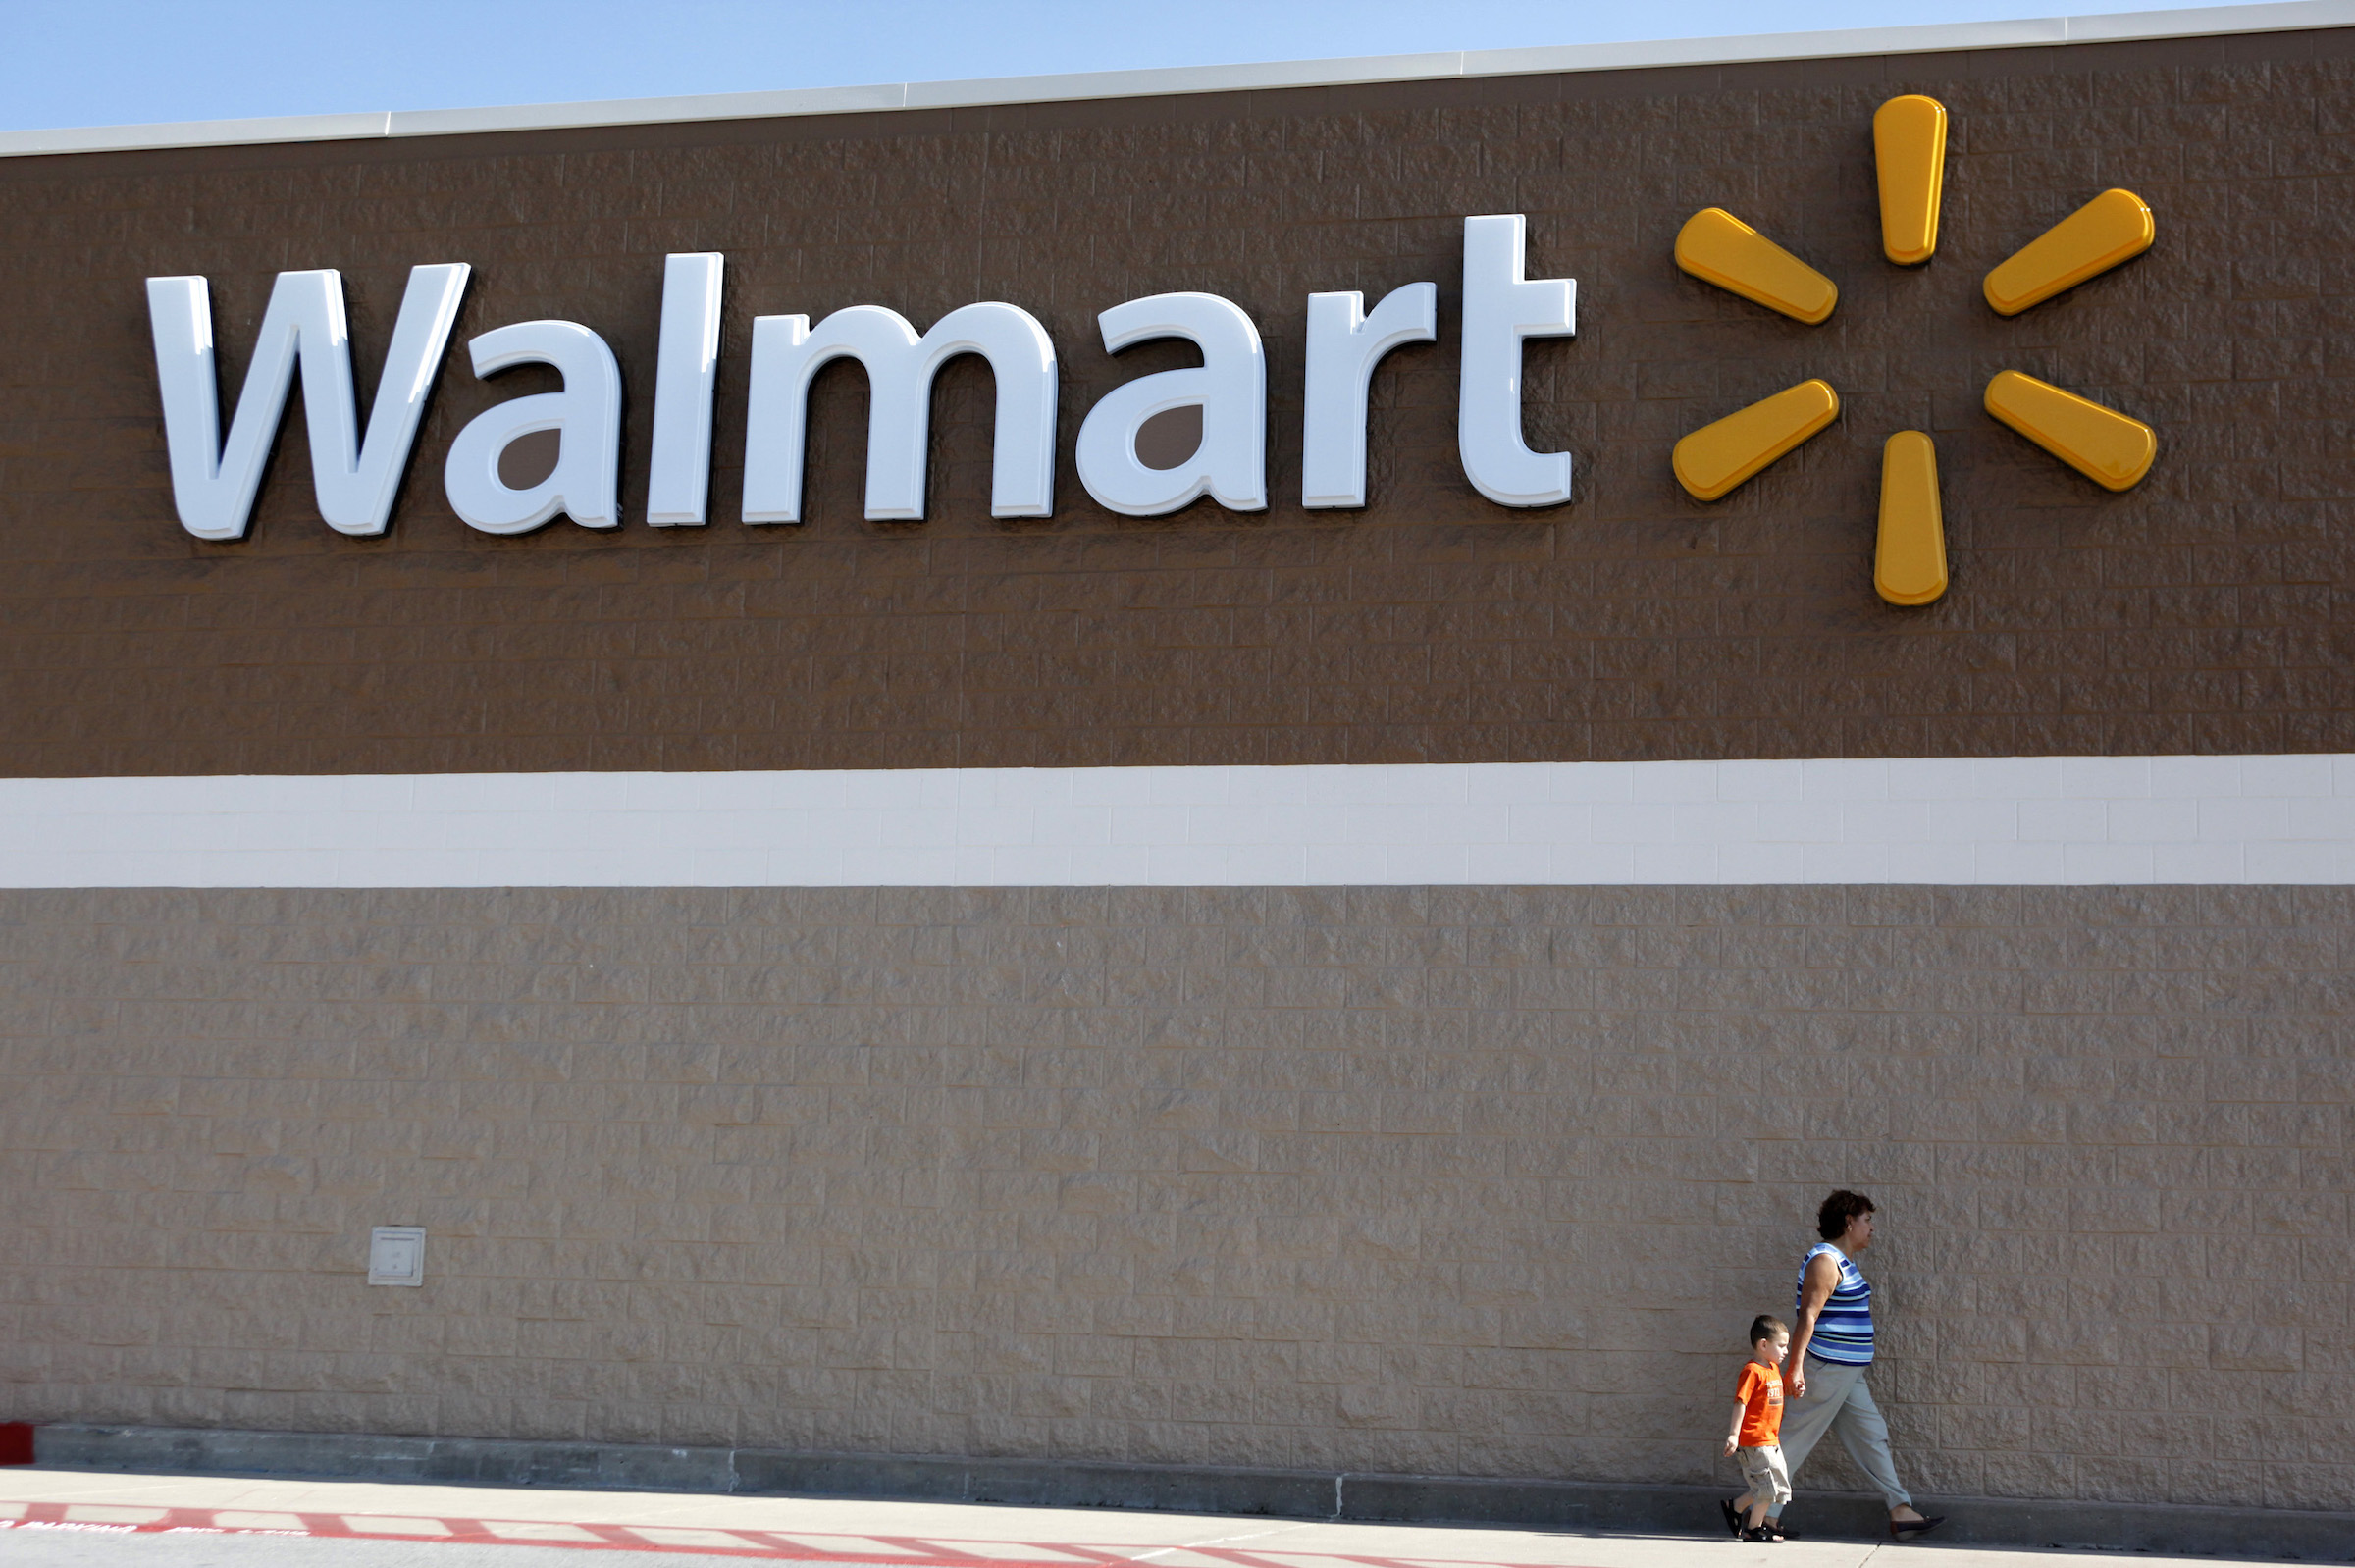 People walk past a Wal-Mart sign in Rogers, Arkansas June 4, 2009. Wal-Mart Stores Inc said on Thursday that its strong financial position leaves it well positioned to take advantage of acquisition opportunities across the globe.